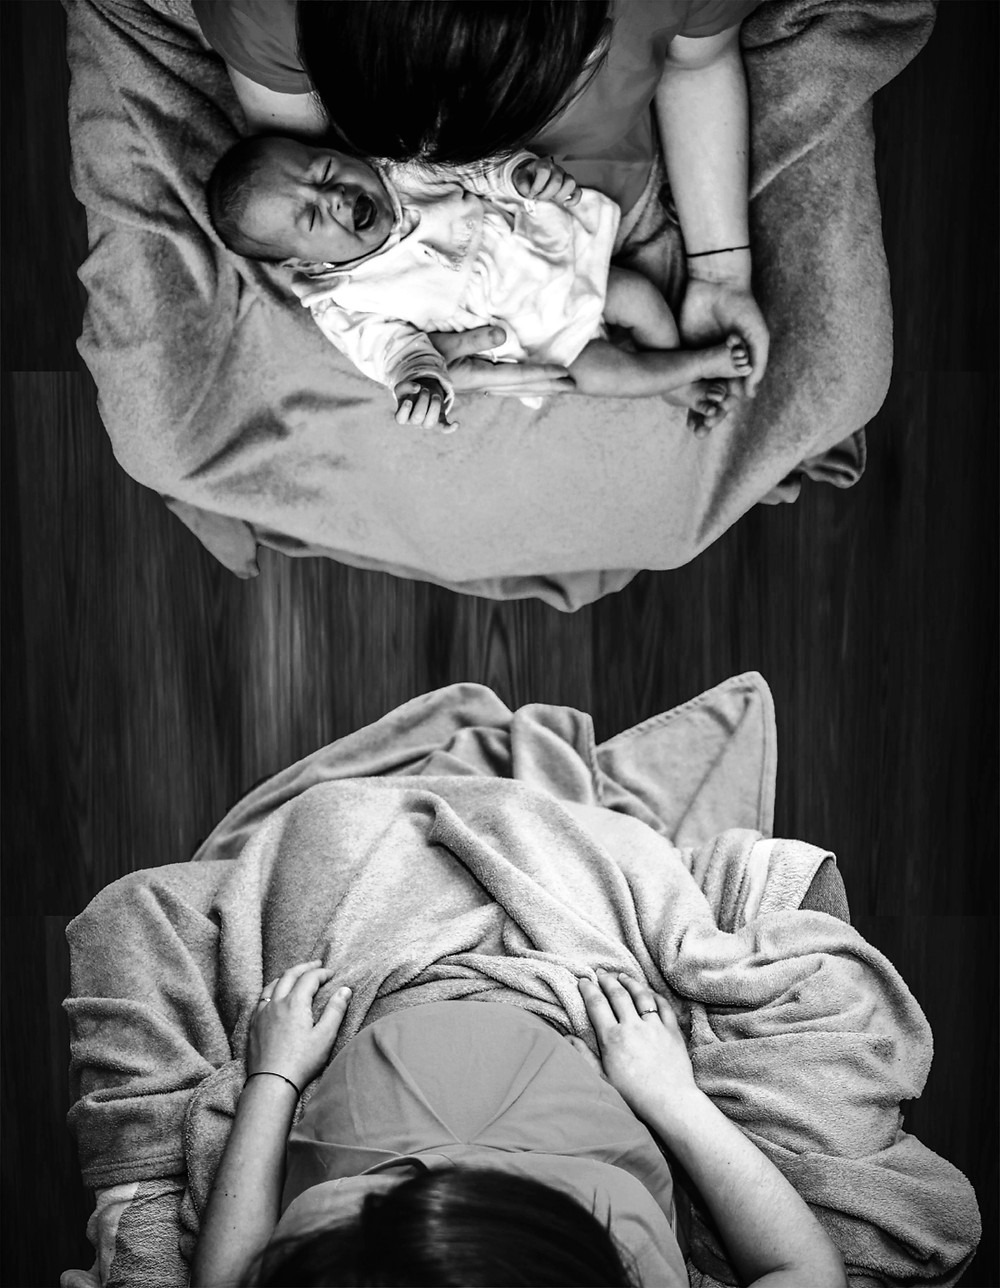 postpartum doula supports newborn family at home